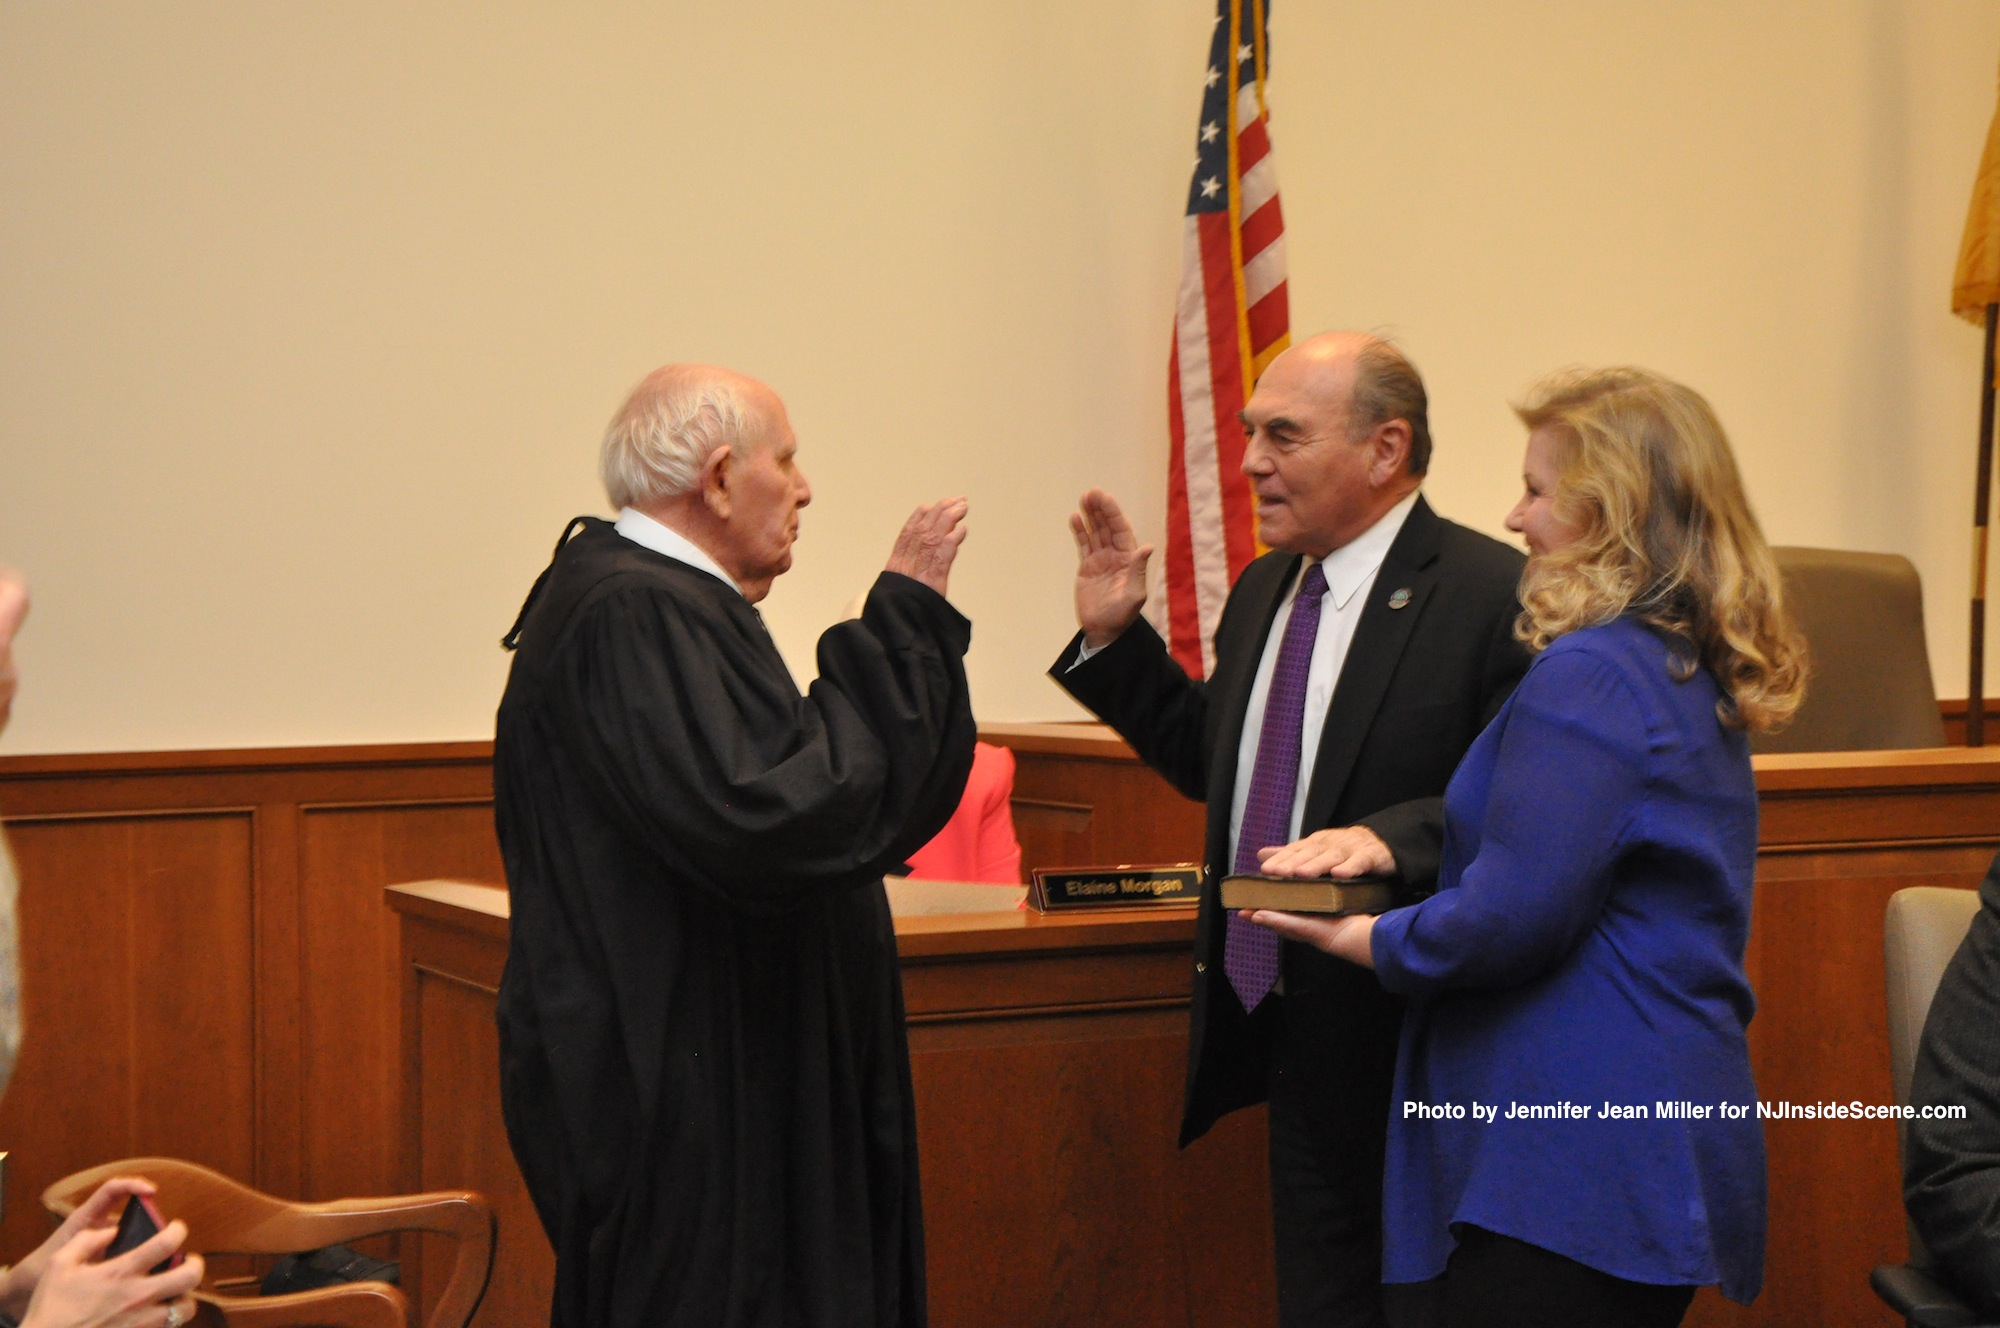 Freeholder Richard Vohden, with his wife, Faith, is sworn in for his term, by Judge Frederic Weber. Vohden was chosen by fellow freeholders as Freeholder Director, and was sworn in for that role a second time.